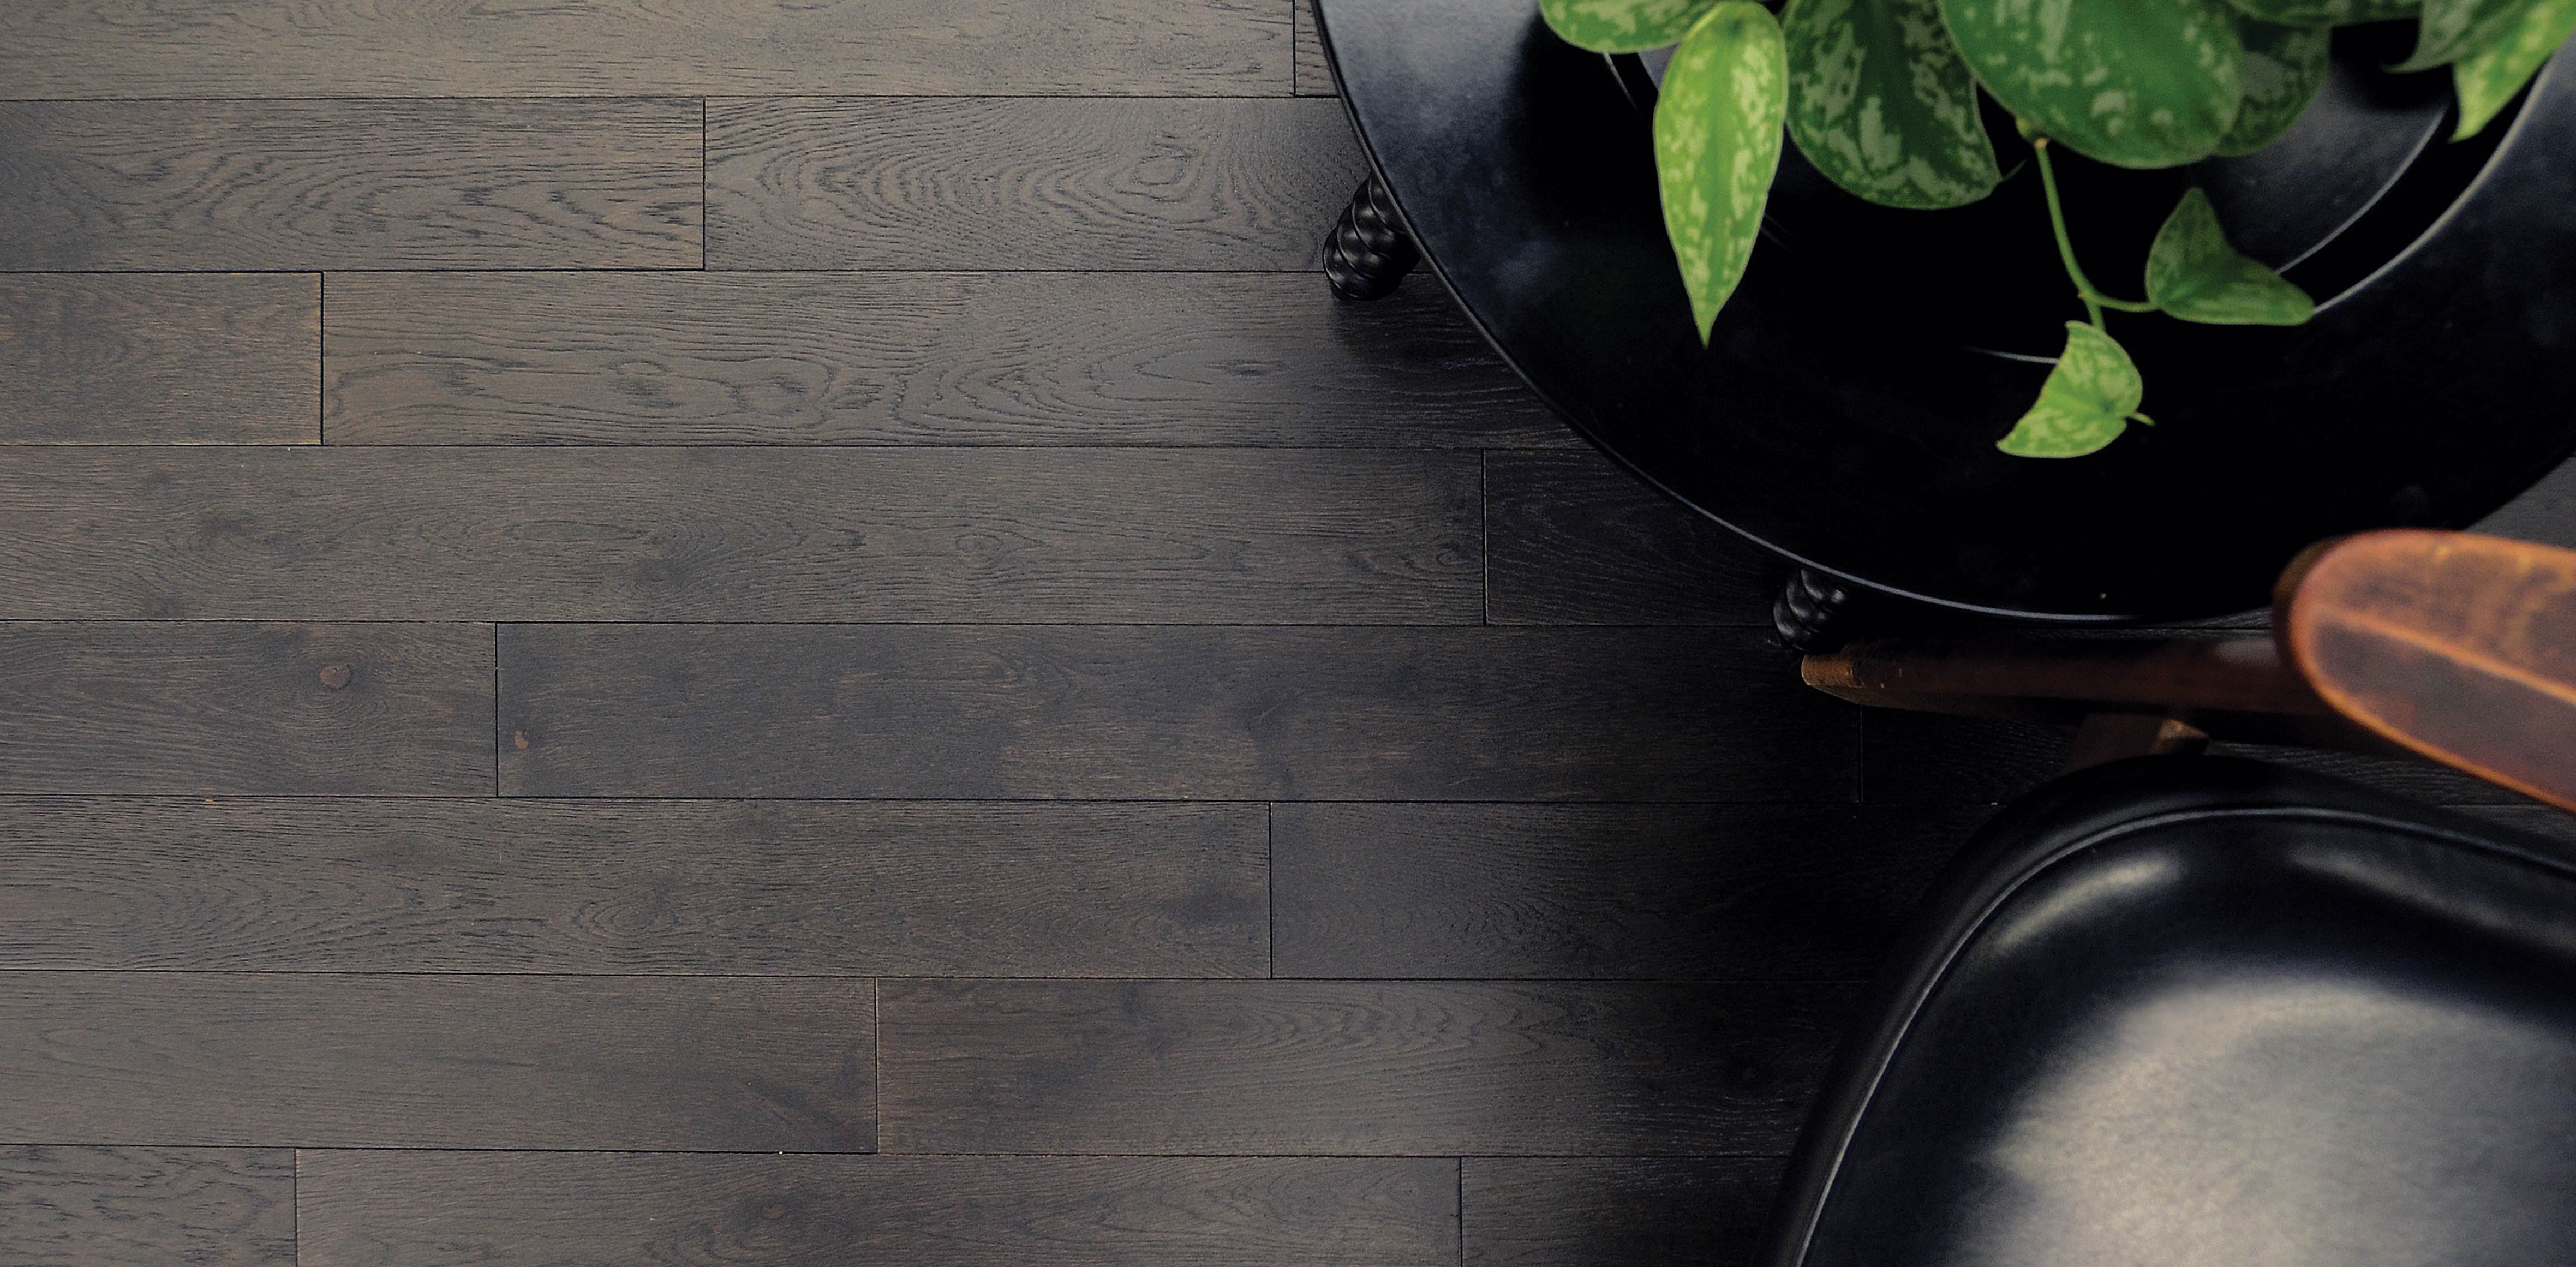 slate-hardwood-flooring-with-chair-and-plant-on-table